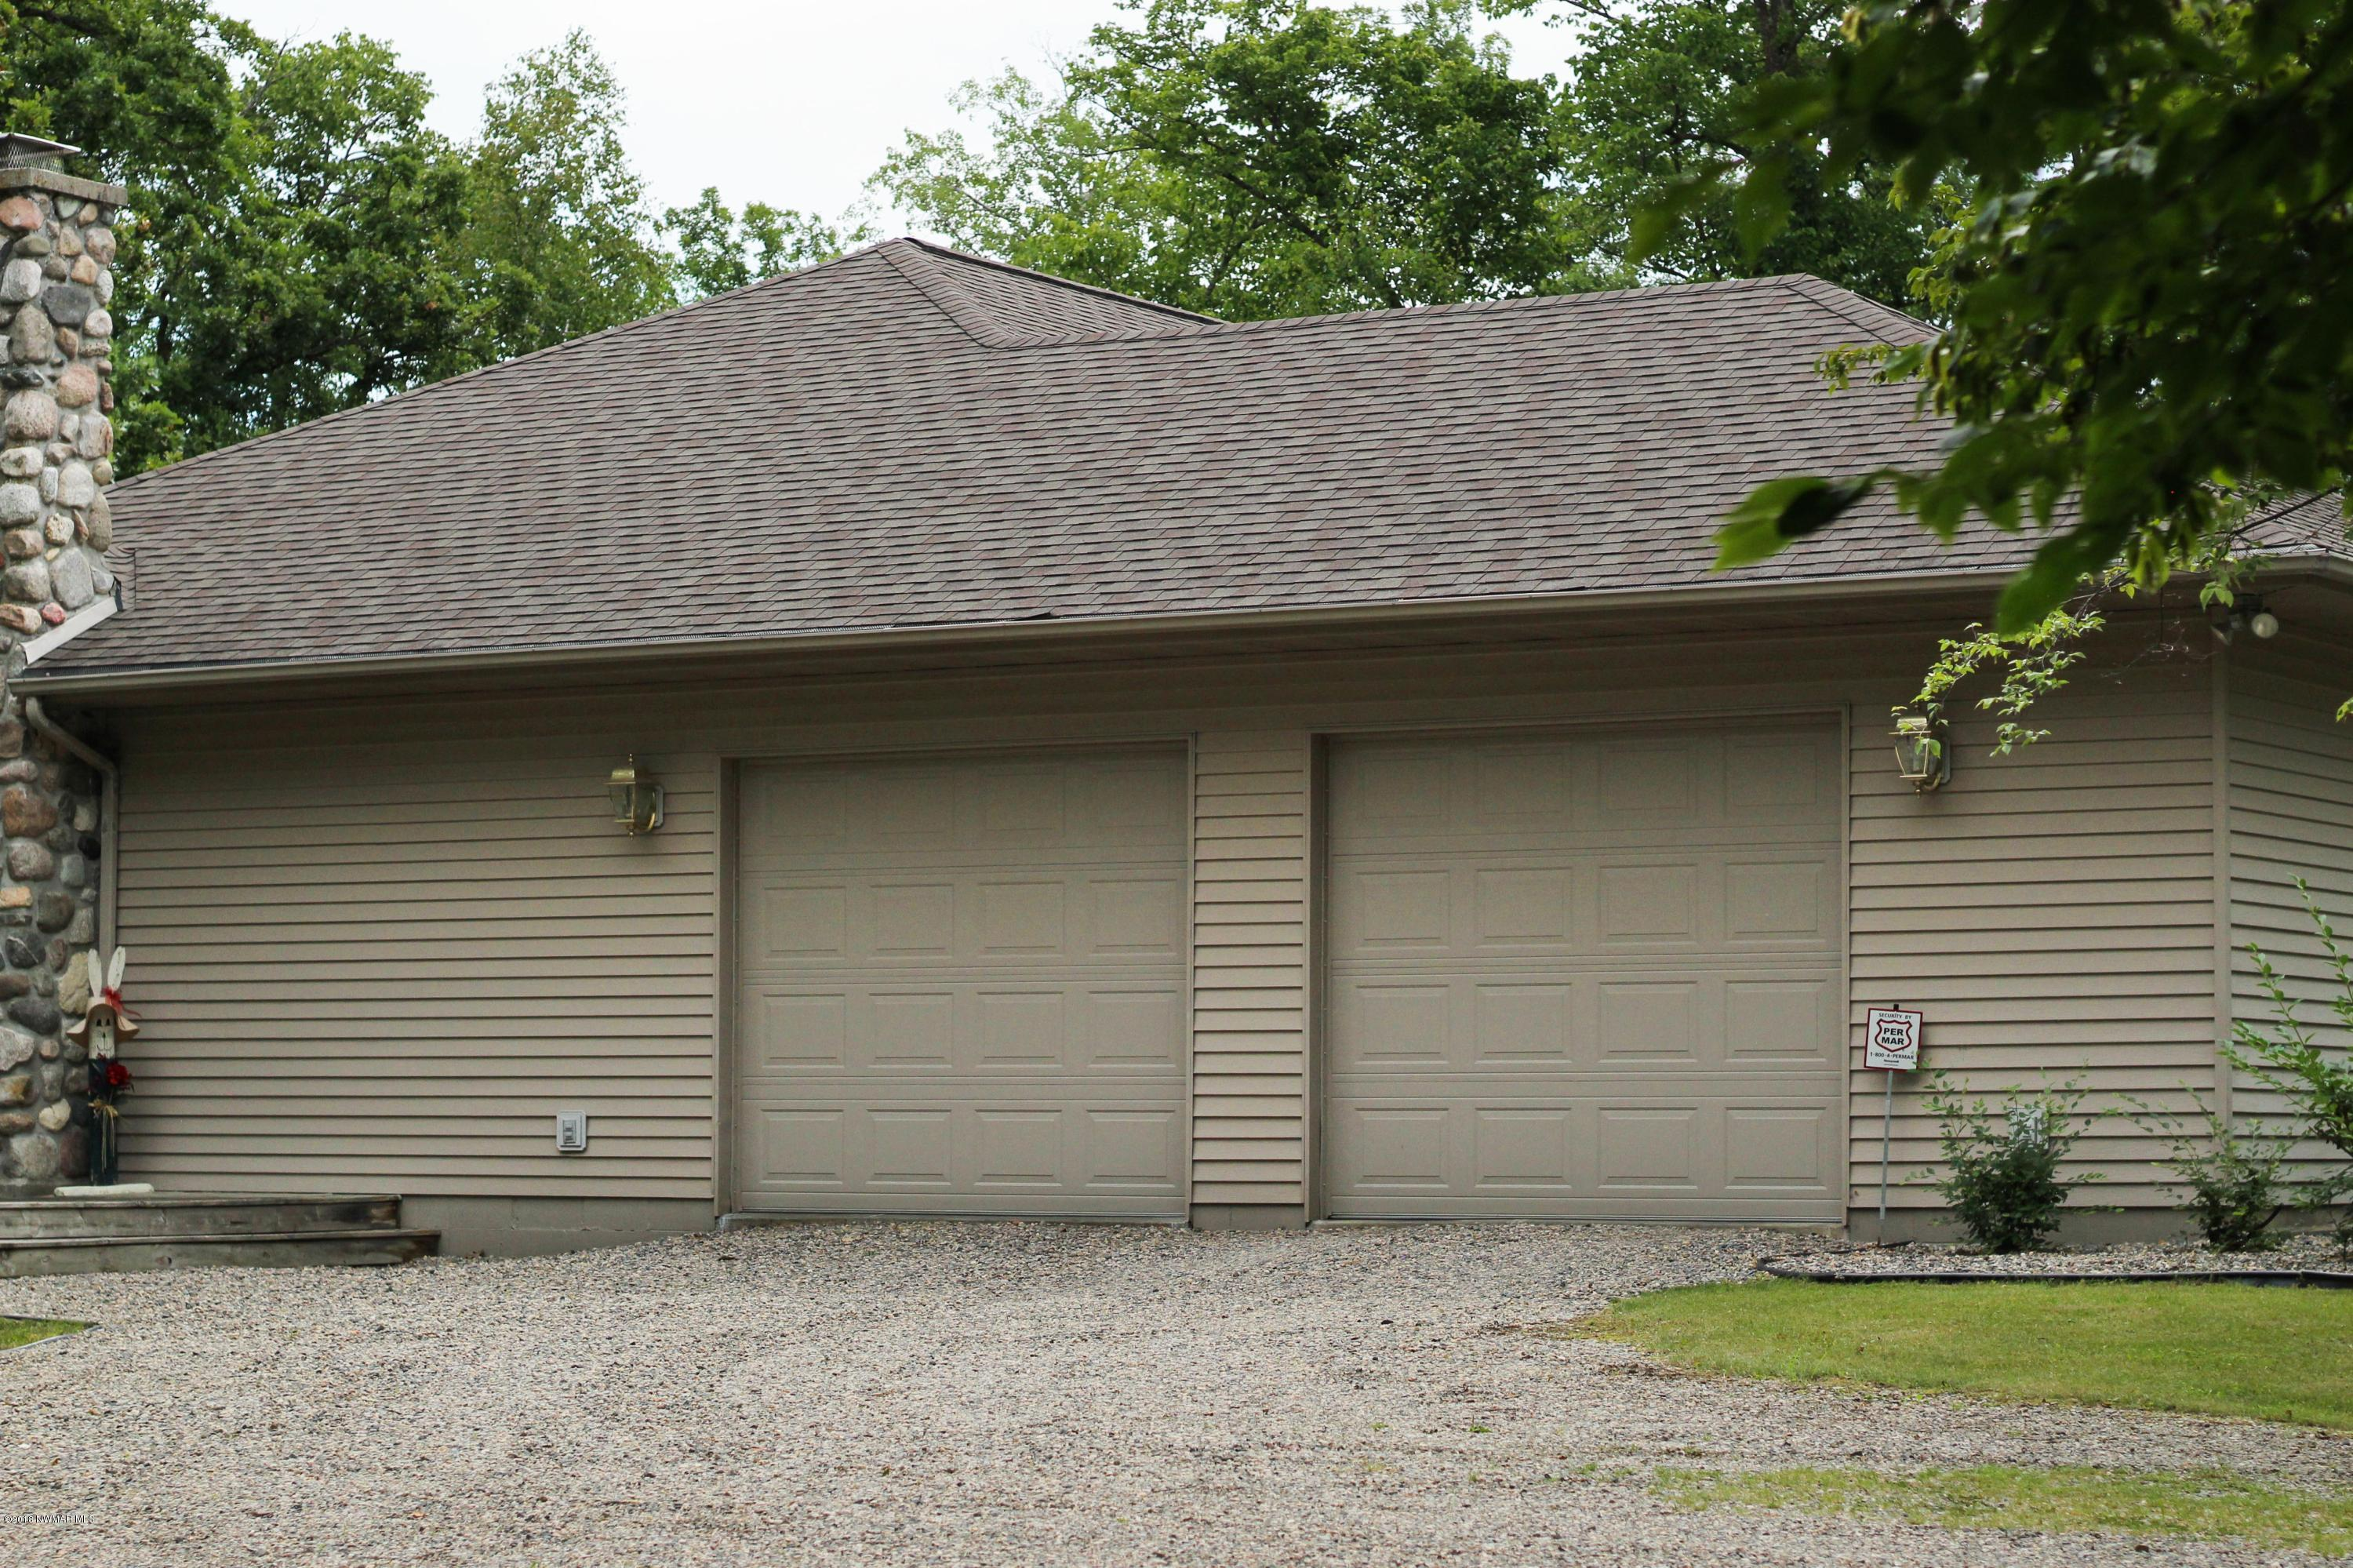 Attached garage, side of house